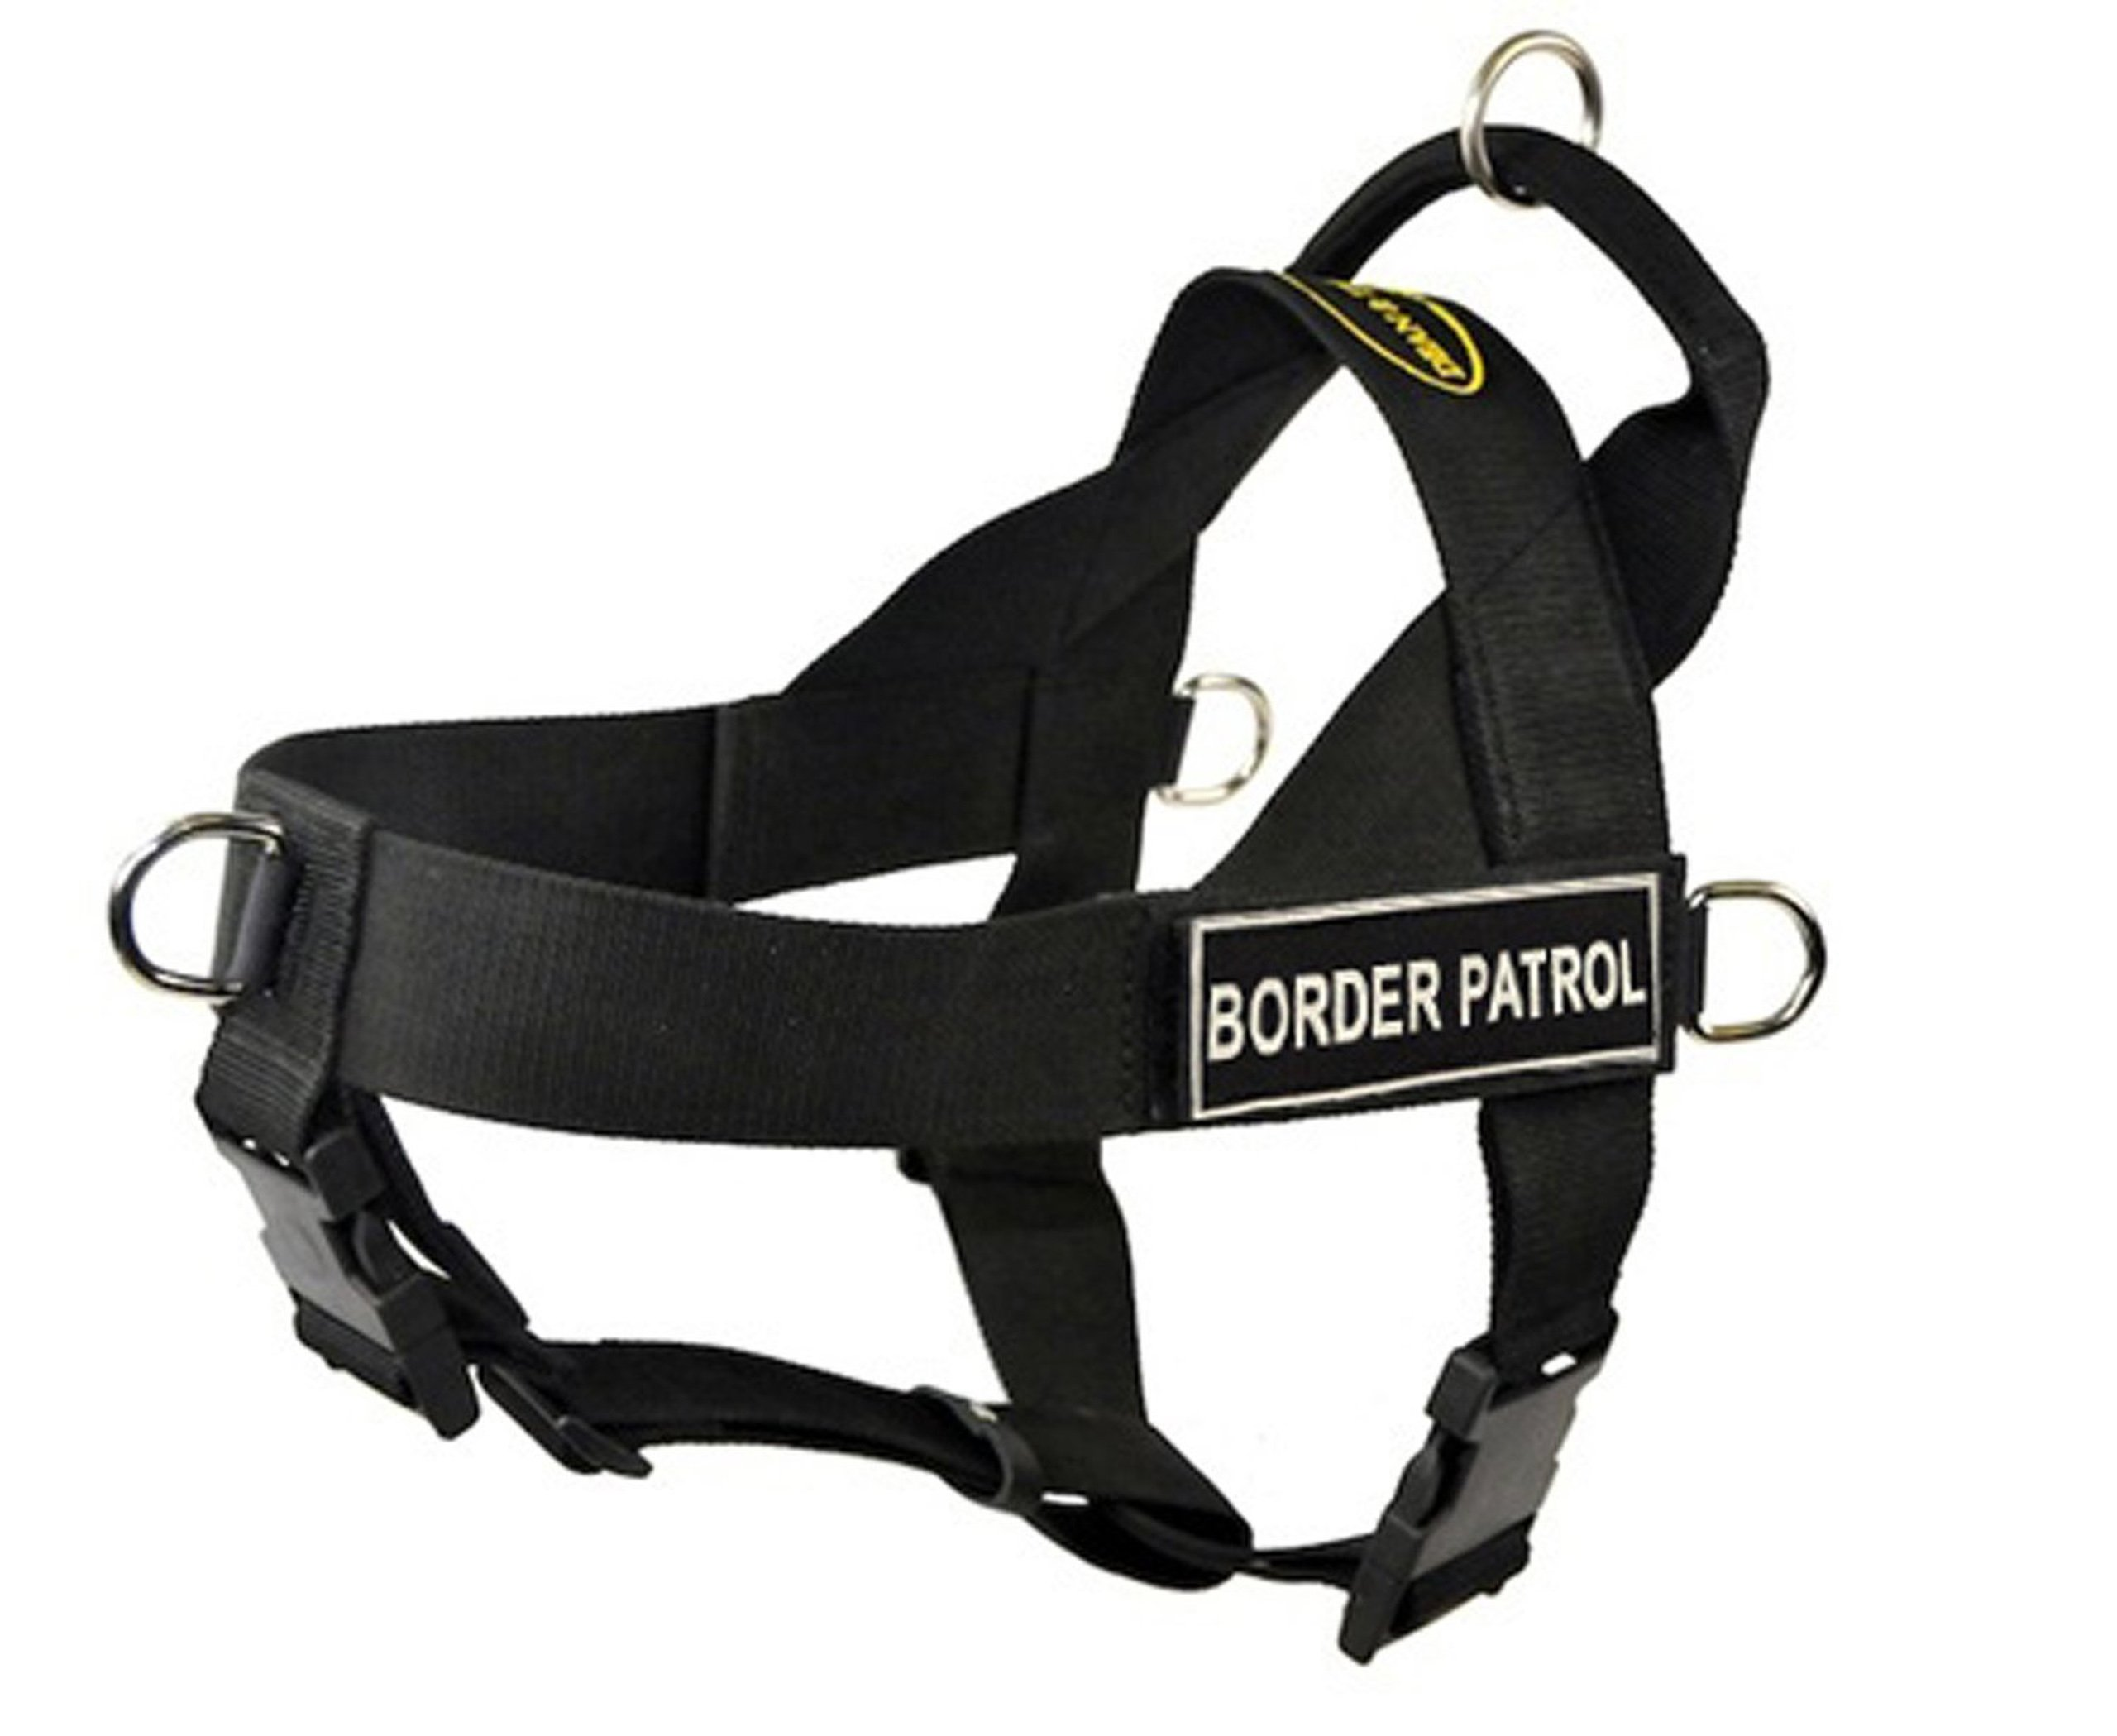 Dean & Tyler D&T UNIVERSAL BPATROL BK-S DT Universal No Pull Dog Harness, Border Patrol, Small, Fits Girth, 61cm to 69cm, Black